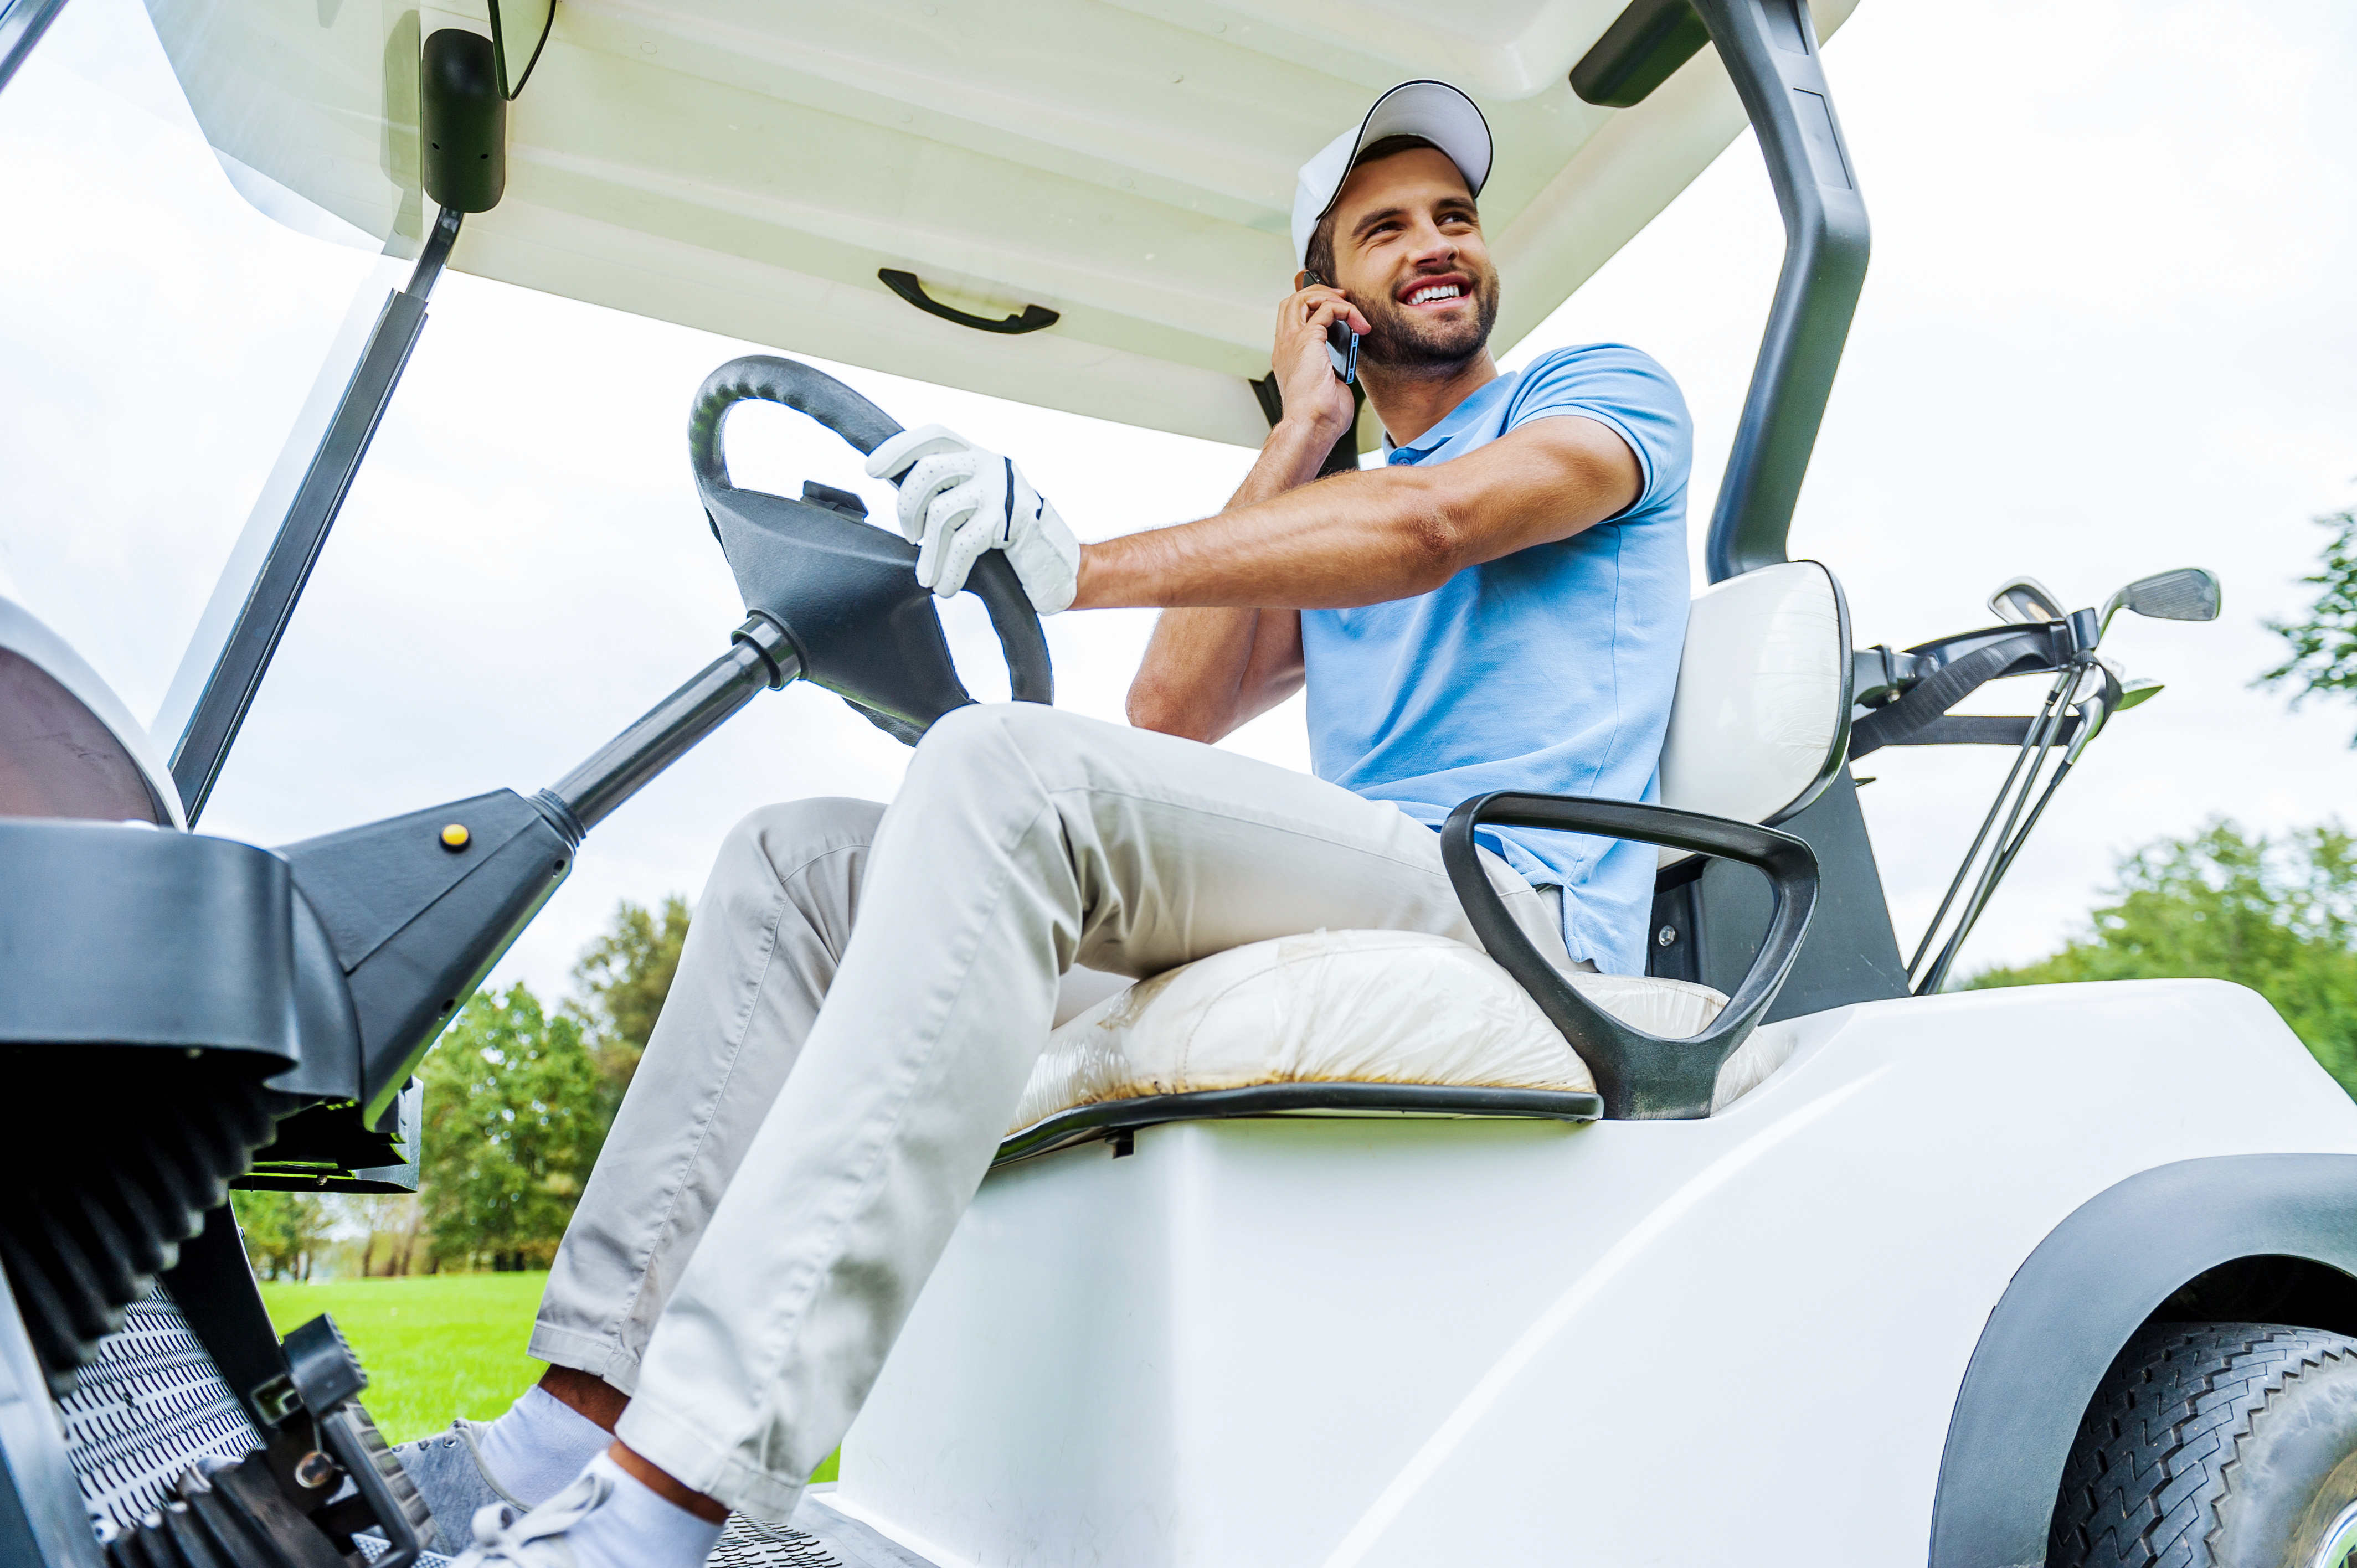 A golfer driving a golf cart and talking on his cell phone